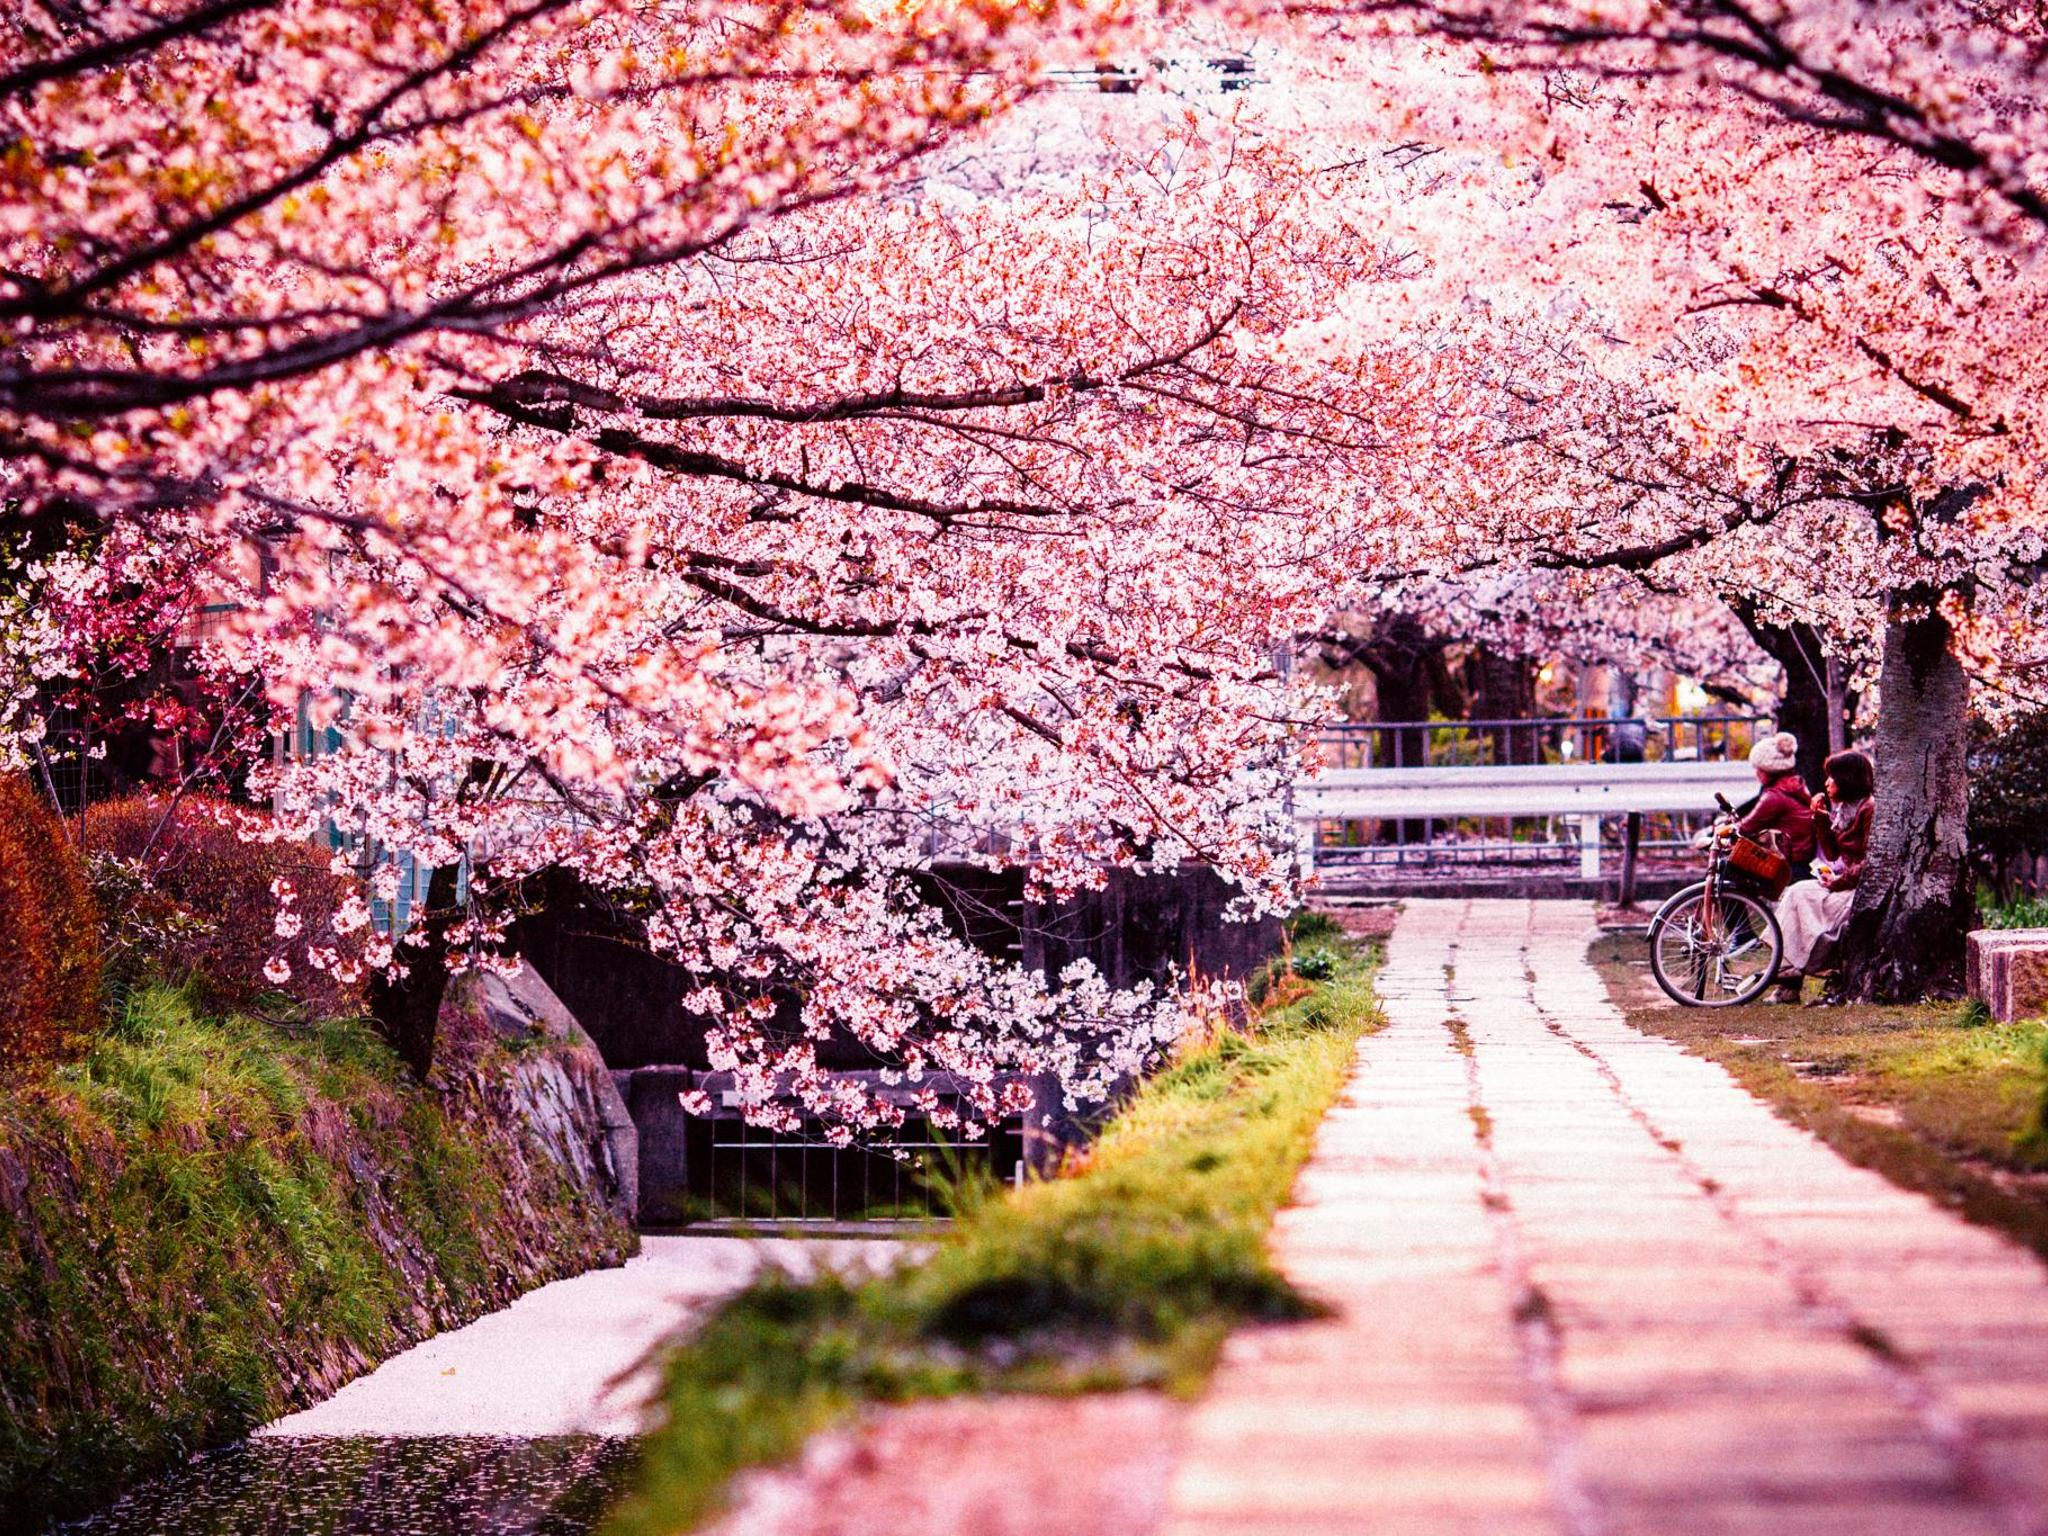 The Top 7 Places In Japan To See Cherry Blossom